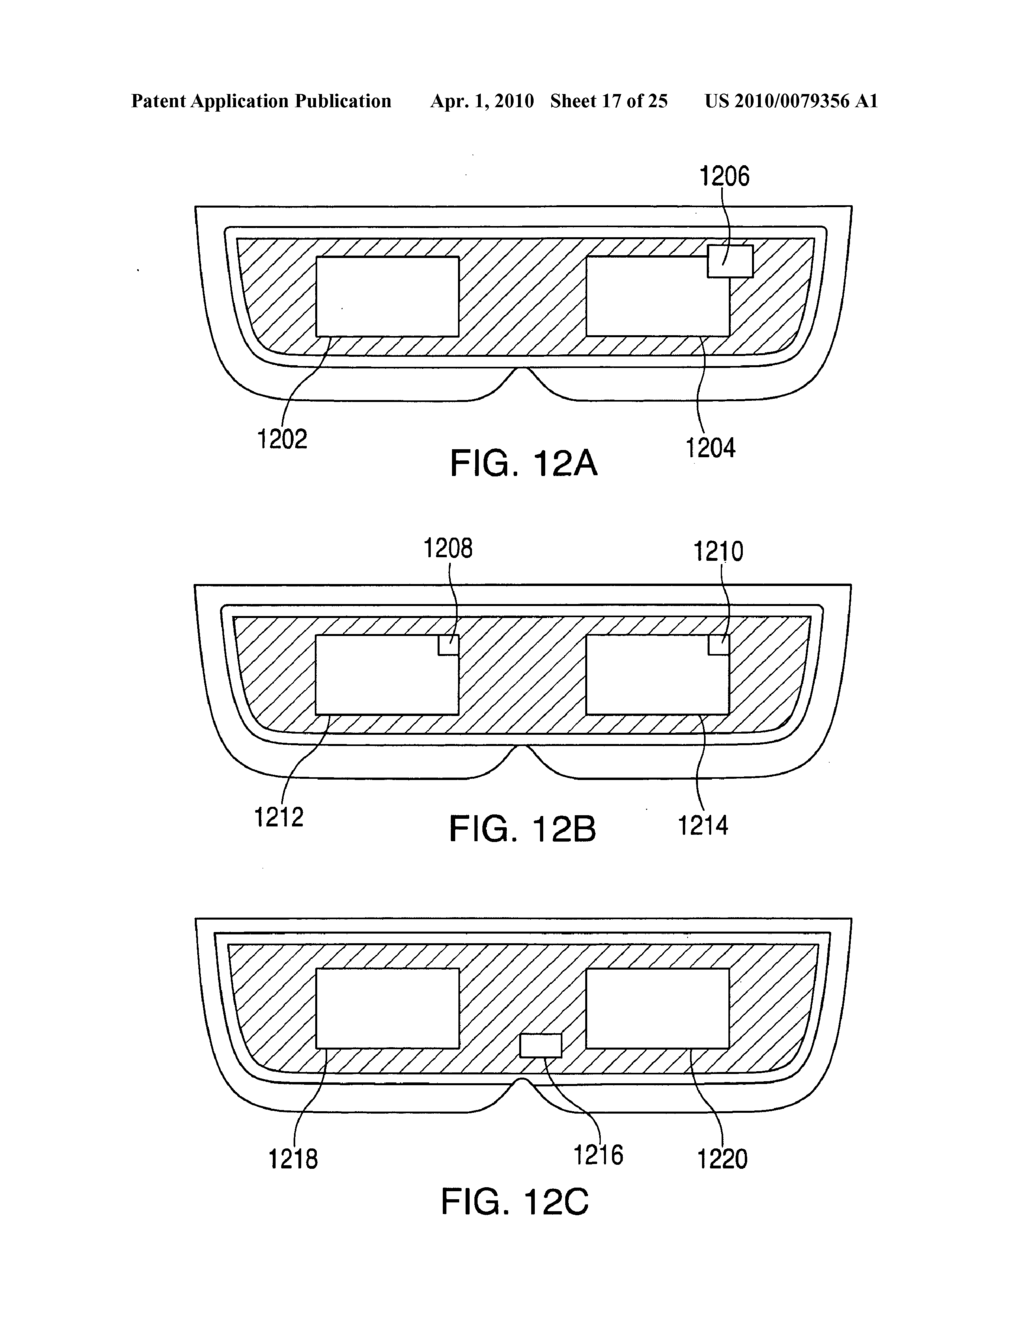 HEAD-MOUNTED DISPLAY APPARATUS FOR RETAINING A PORTABLE ELECTRONIC DEVICE WITH DISPLAY - diagram, schematic, and image 18